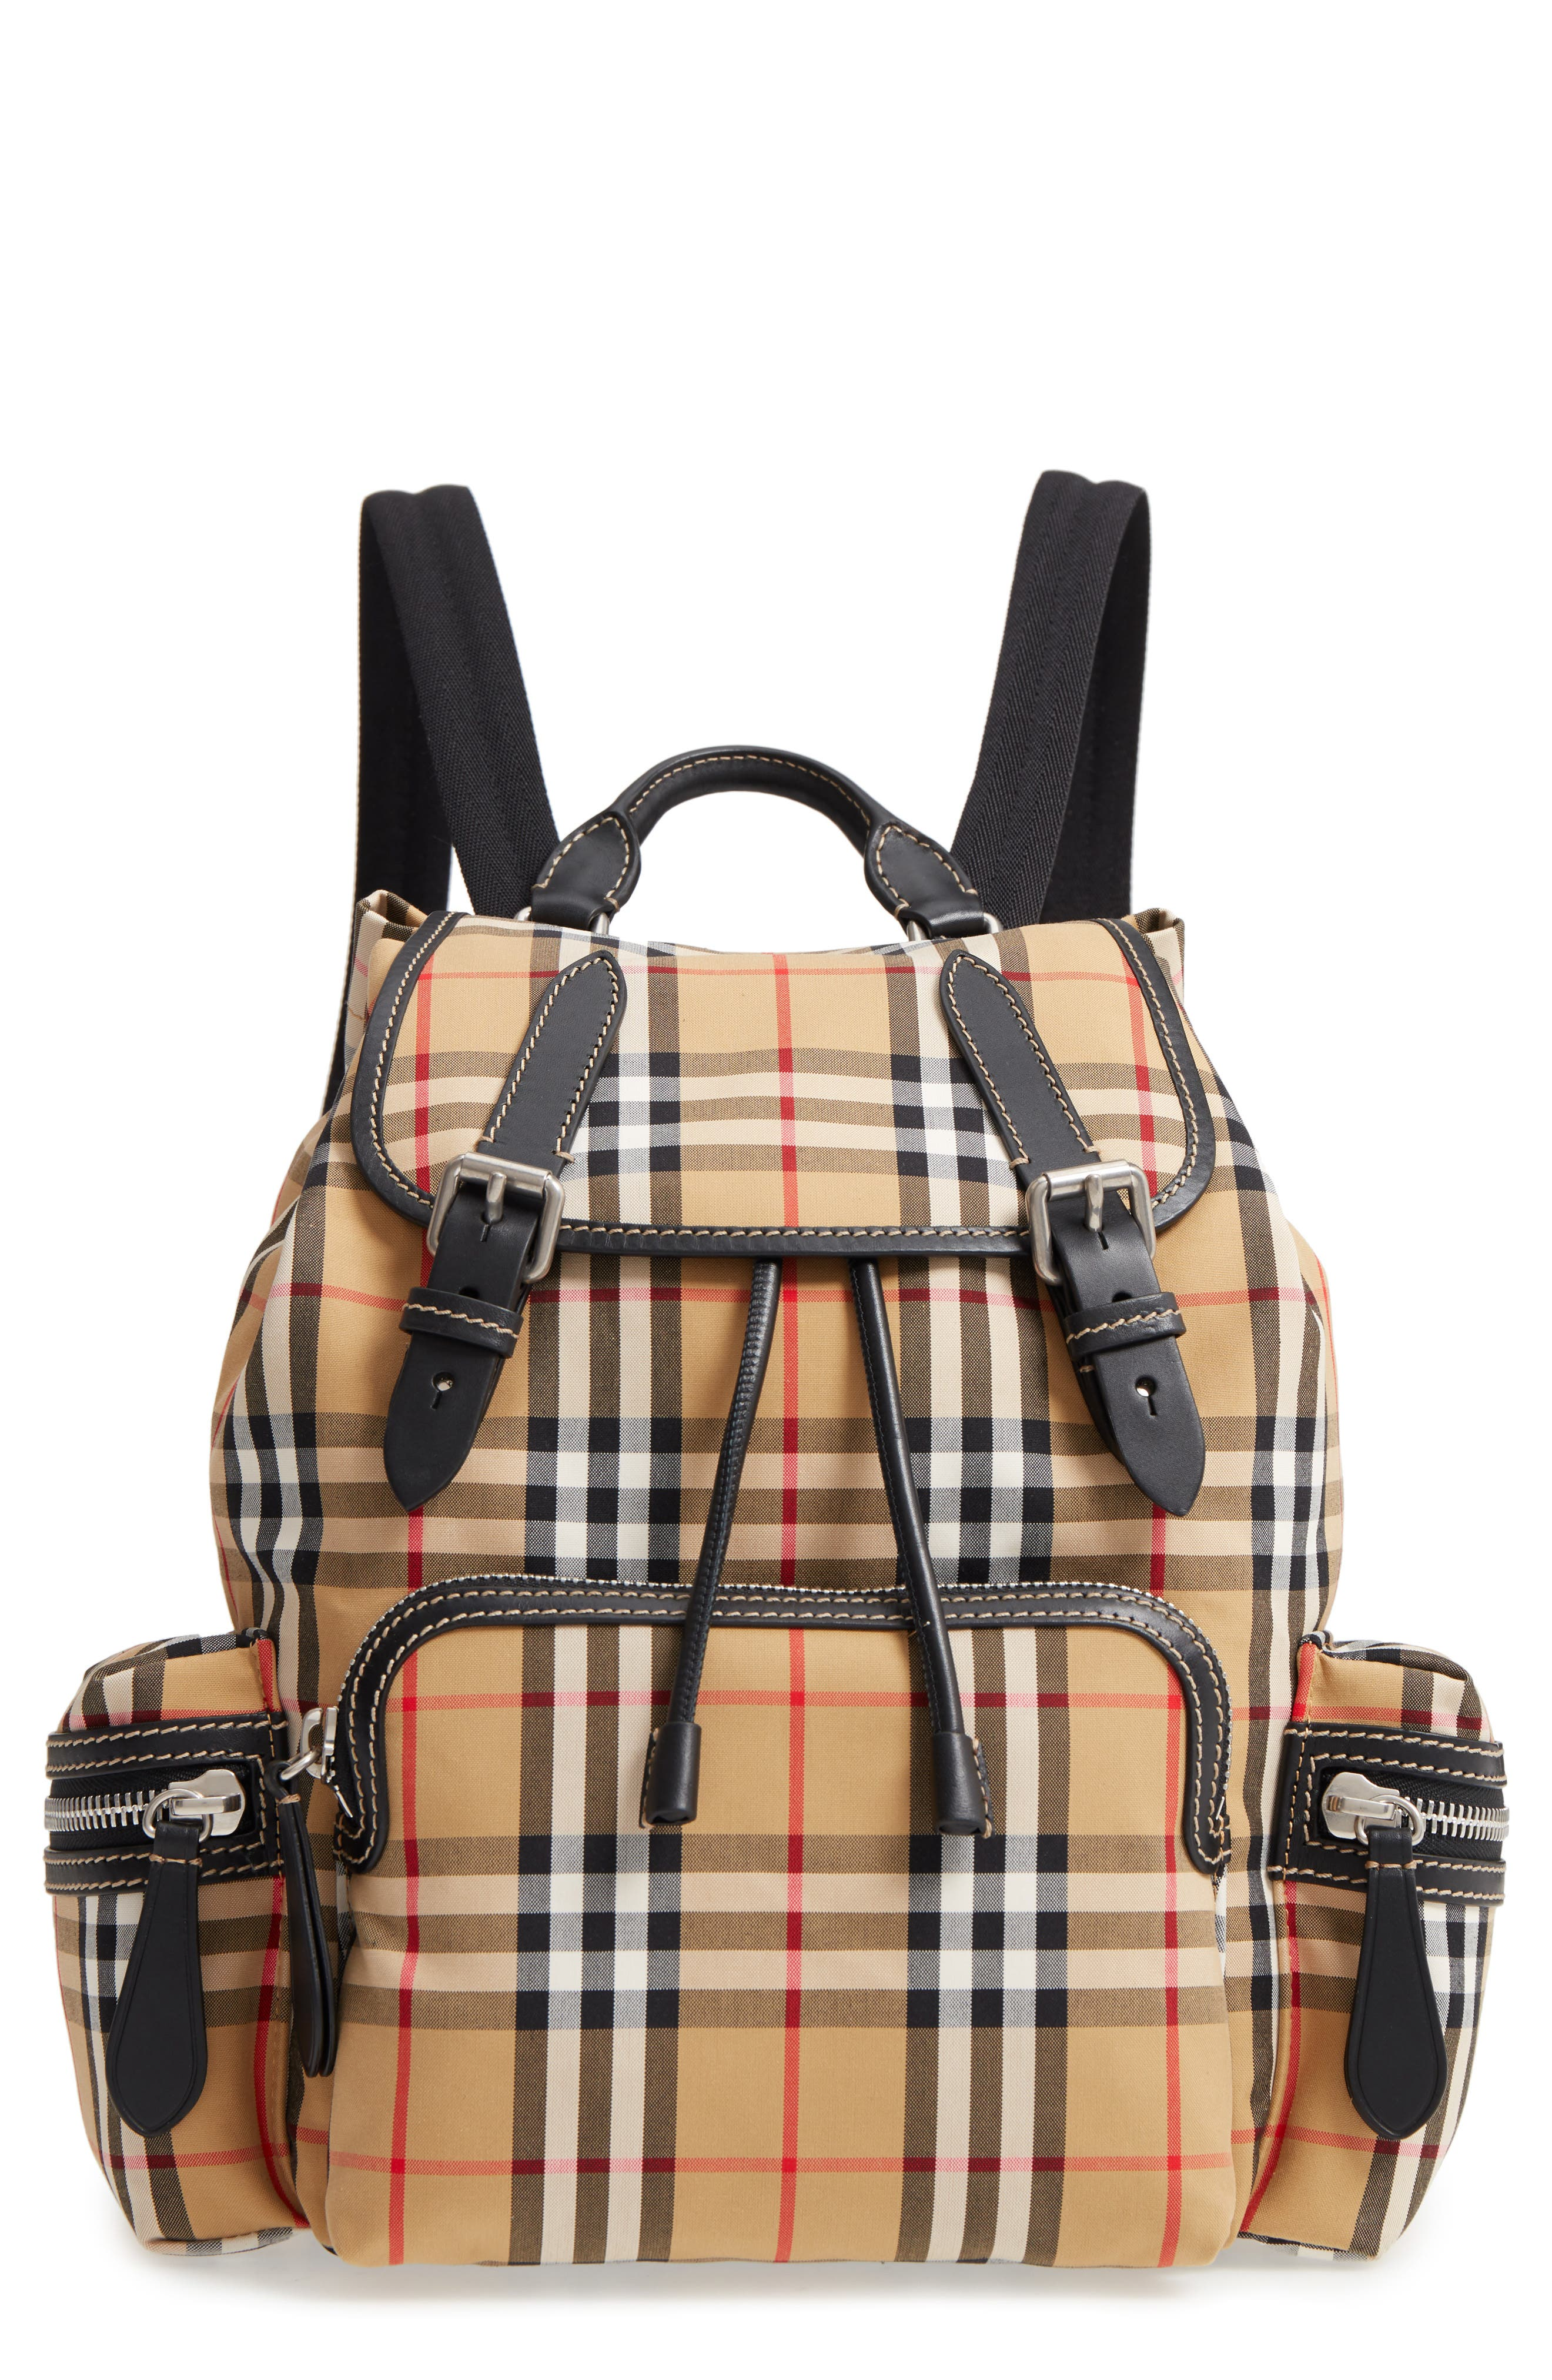 Medium Rucksack Check Cotton Backpack, Main, color, ANTIQUE YELLOW